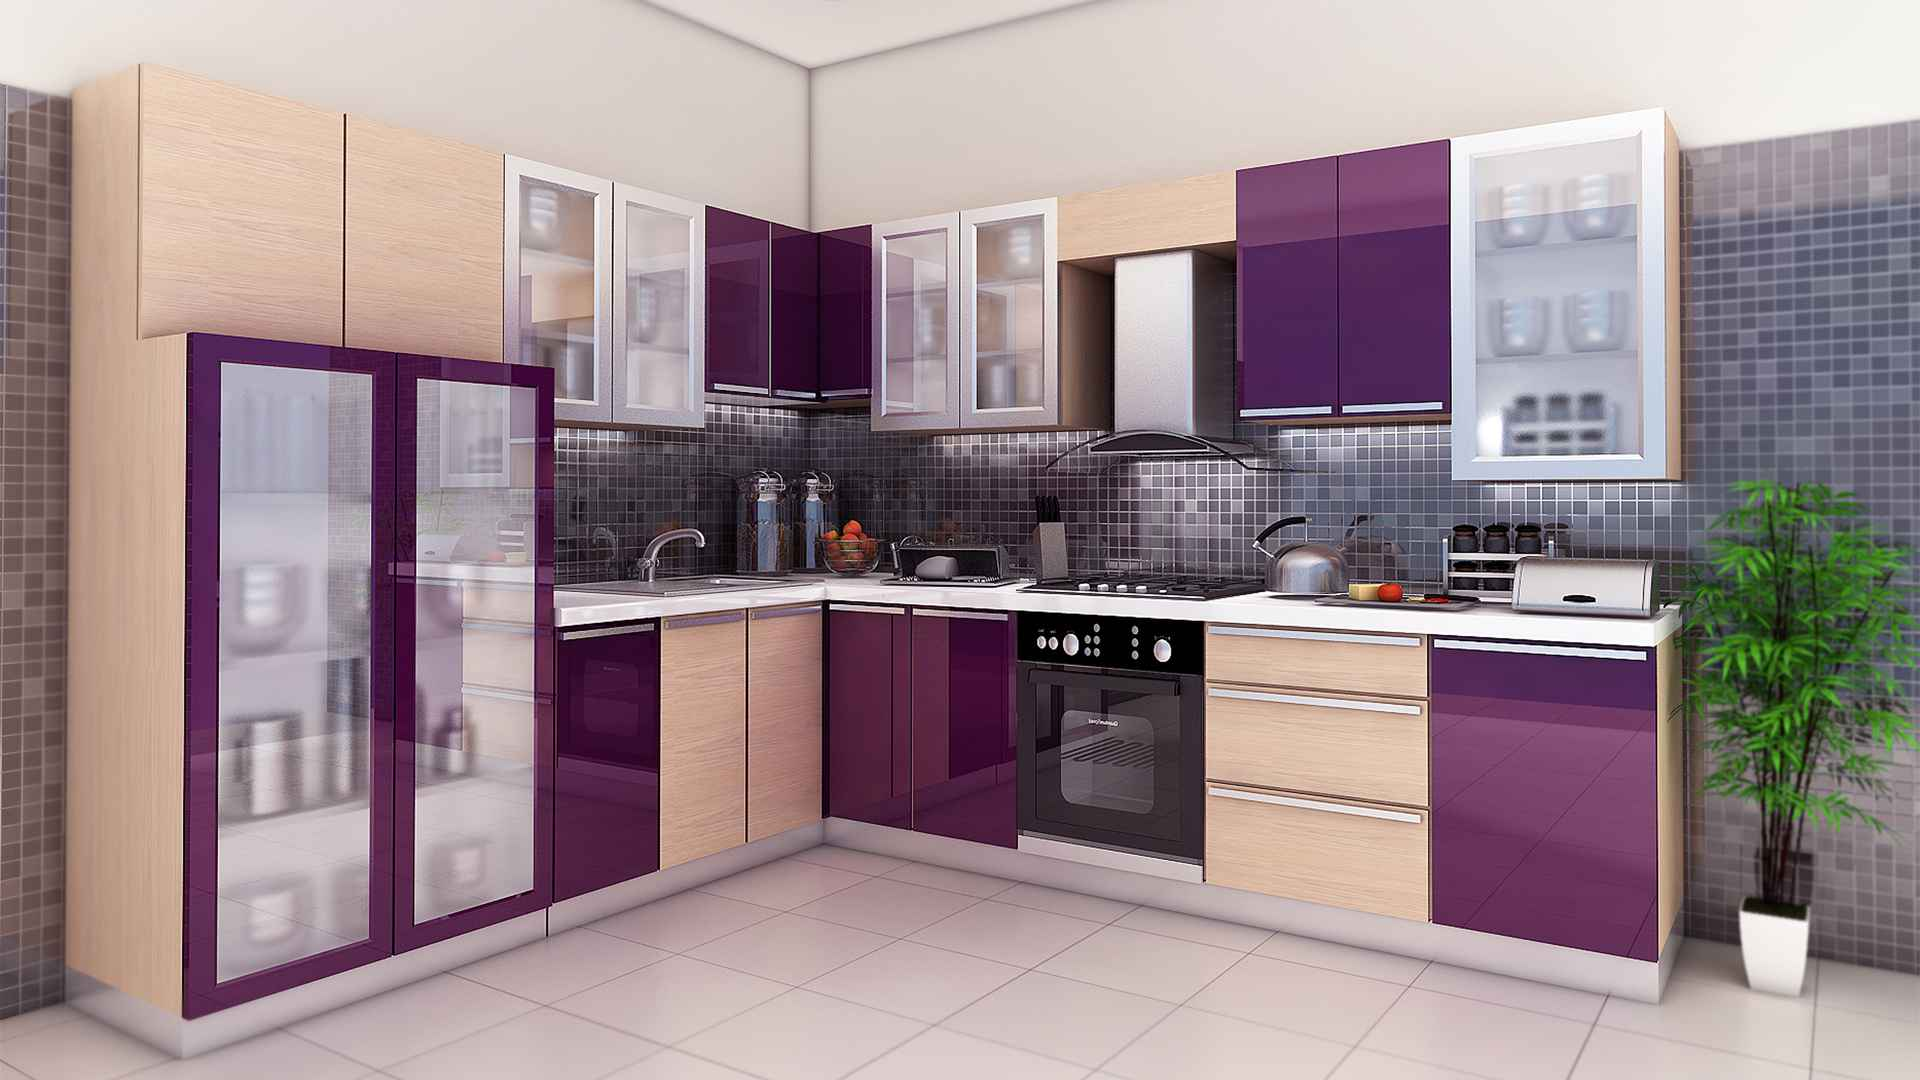 40 Most Beautiful Kitchen Wallpapers For Free Download Ideas For Kitchens Wall Paper on kitchen floor covering ideas, kitchen wood ideas, kitchen signs ideas, kitchen electrical ideas, kitchen furniture ideas, kitchen art ideas, kitchen mirror ideas, kitchen windows ideas, modern small kitchen design ideas, kitchen doors ideas, kitchen brick ideas, kitchen wallpaper designs, kitchen rugs ideas, kitchen photography ideas, kitchen tables ideas, kitchen blinds ideas, kitchen bathroom ideas, kitchen painting ideas, kitchen decor ideas, kitchen paneling ideas,